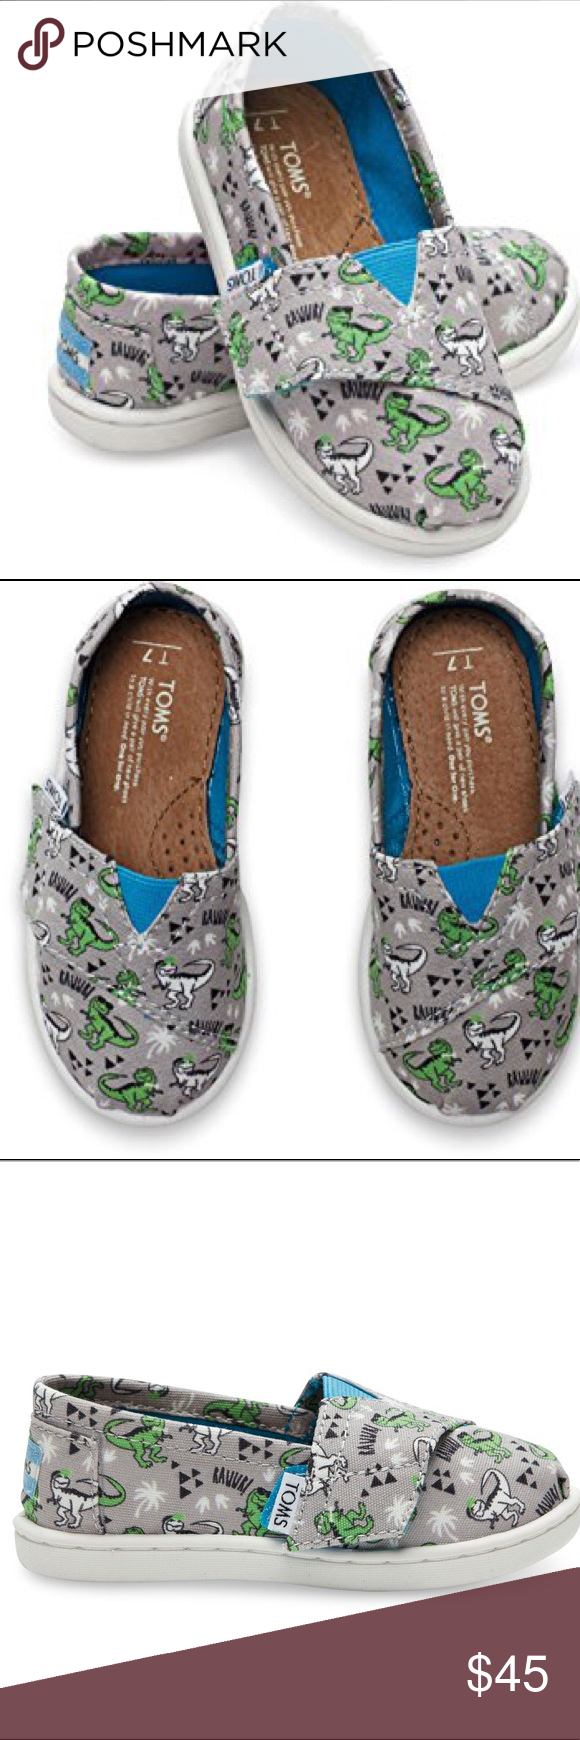 f70ef14393e Toms Classic Ash Canvas Dinosaur kids baby shoes 5 Infant baby Toms Tiny  canvas with all over dinosaur green print shoes. Worn few times around the  ...